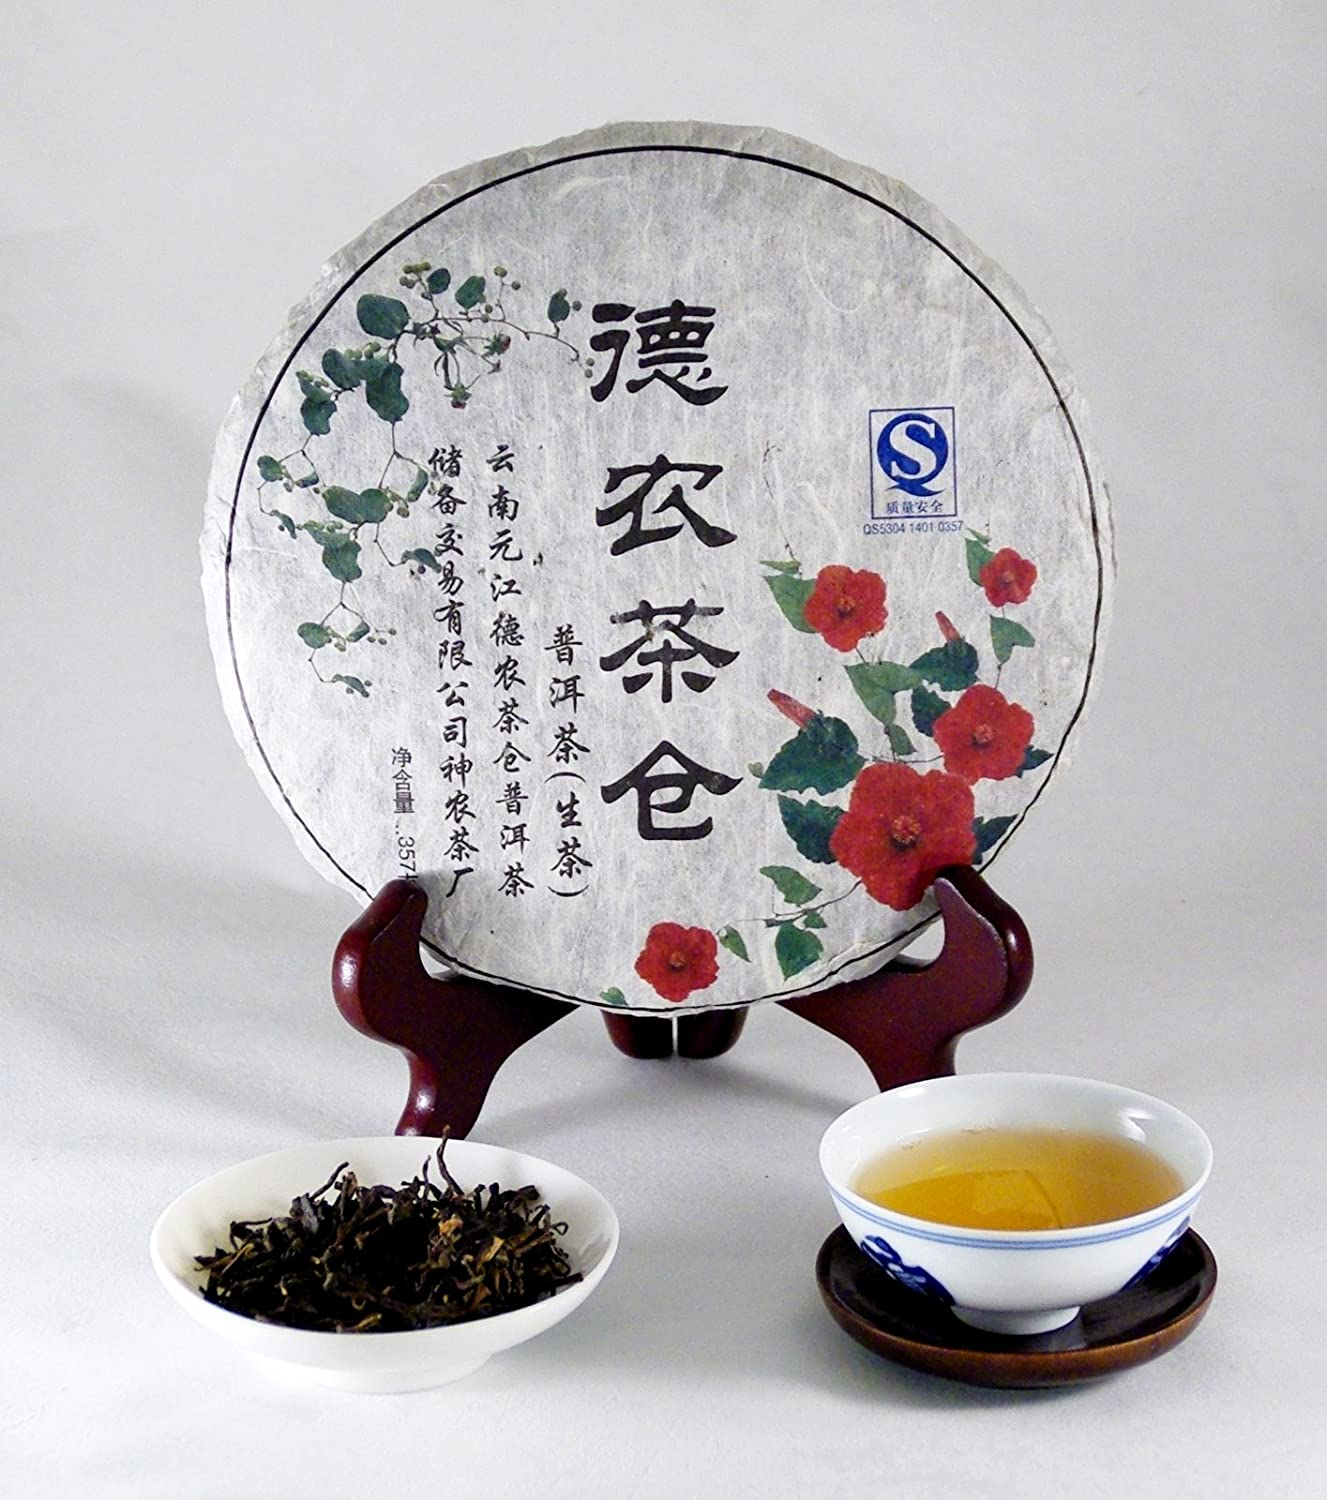 Denong Raw Pu-erh (Puer, Puerh, Pu'erh) Tea Cake - 2007 Vintage, Spring Harvest (357 Grams) - All Natural